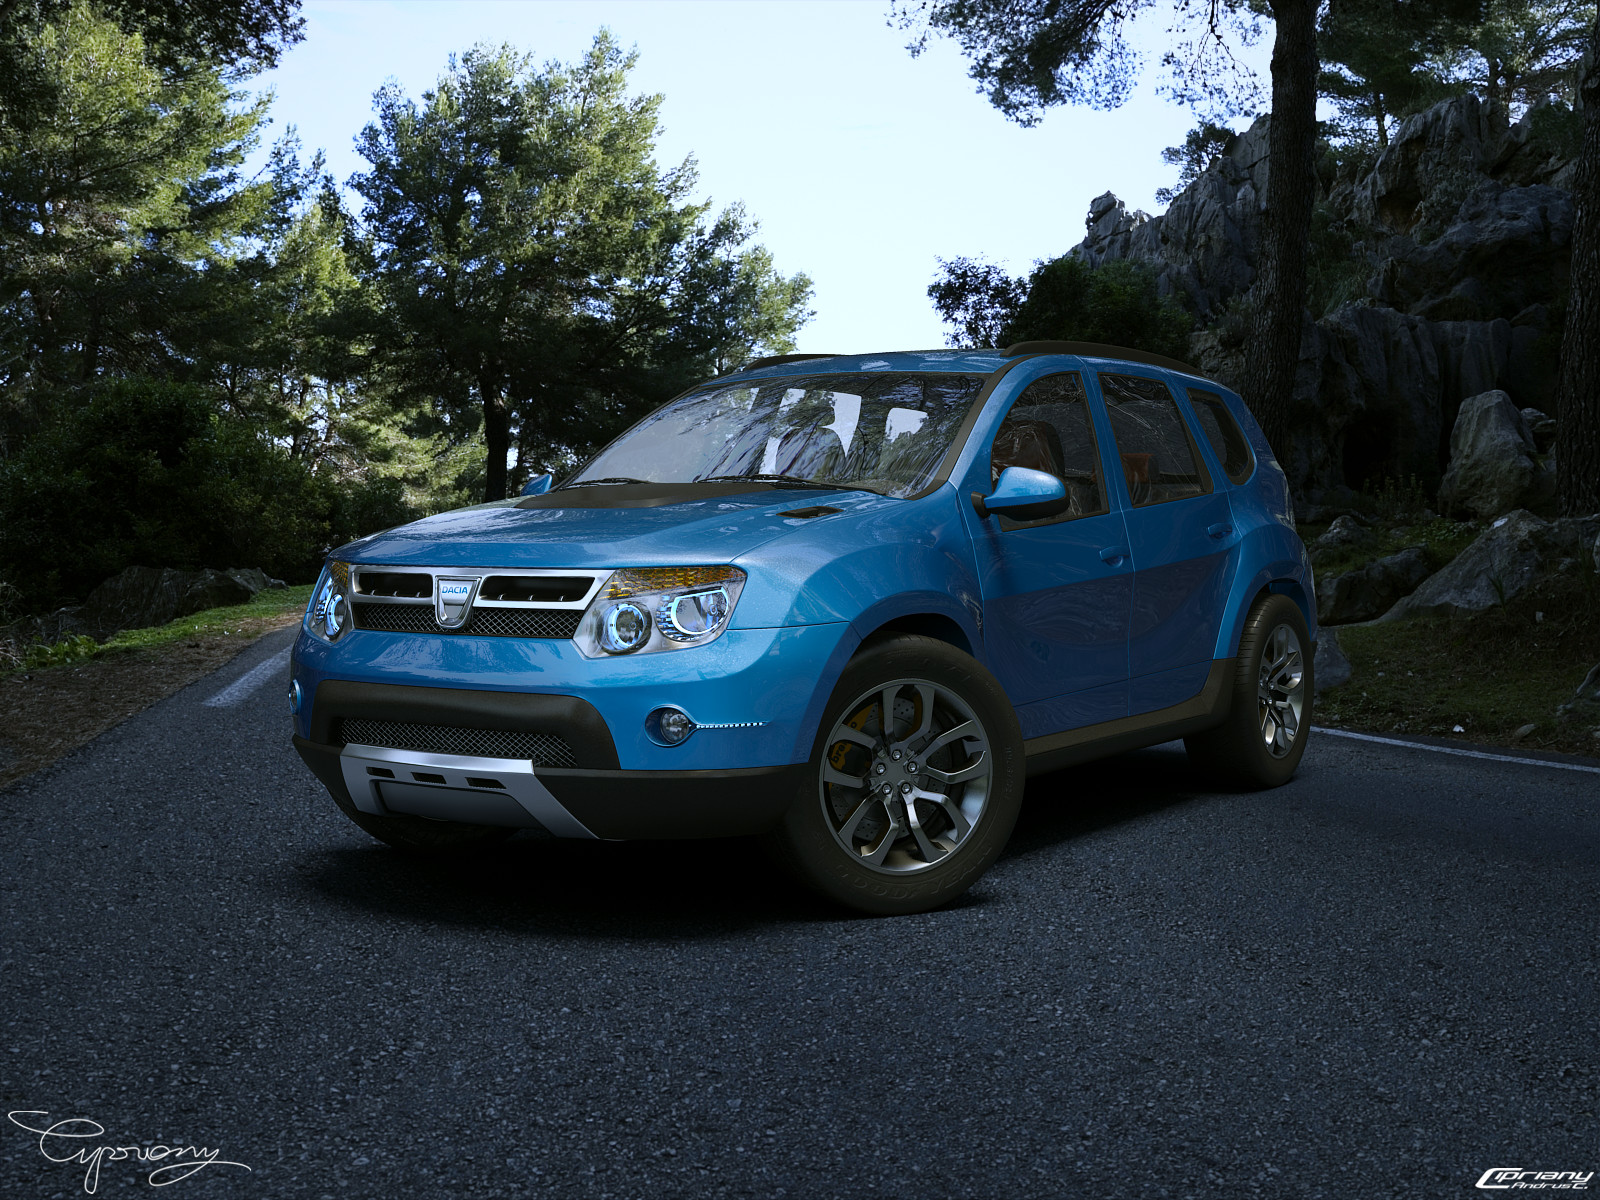 dacia duster tuning 7 by cipriany on deviantart. Black Bedroom Furniture Sets. Home Design Ideas